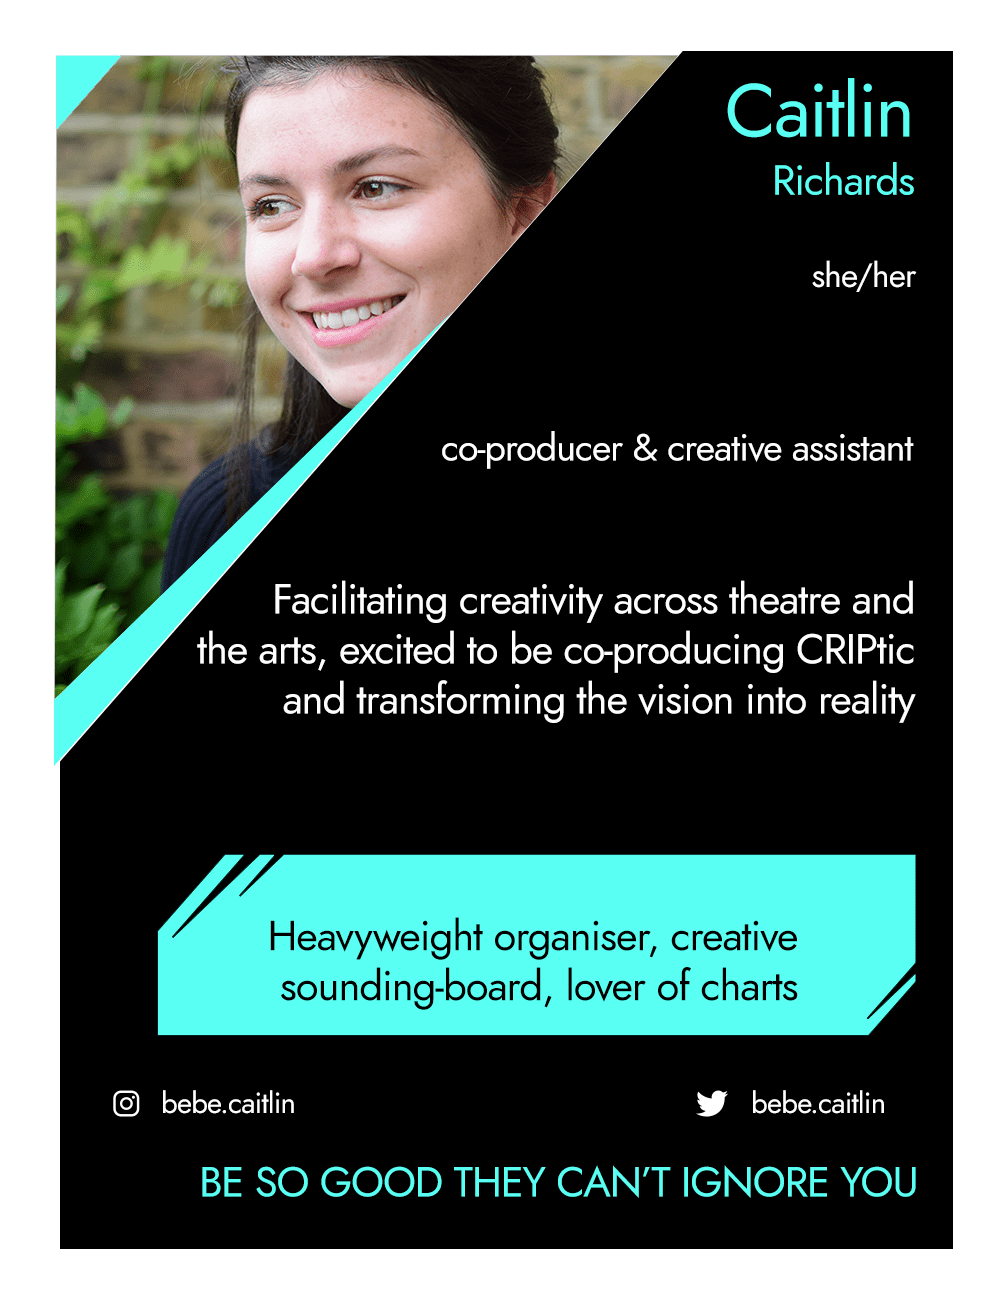 This is the front of an artist announcement card for Caitlin. The design is styled on an American baseball card. The card has a thin white border and the rest of the card is black with turquoise accents. On the left hand corner, there is a triangular cross section of a photo of Caitlin. In it, Caitlin is a white woman with long dark hair. She smiles in ¾ profile, against a wall and an unwieldy wisteria bush. To the right of the photo, there is the artist's name, Caitlin, pronouns, she/her, and artistic practice, co-producer & creative assistant. Below this is a short artist biography, which reads facilitating creativity across theatre and the arts,excited to be co-producing CRIPtic and transforming the vision into reality. In a turquoise rectangle below this, the card highlights what the artist's role is within CRIPtic. For Caitlin this reads heavyweight organiser, creative sounding board, lover of charts. Below this are the artist's social media handles @bebe.caitlin, and a quote selected by the artist. This reads: Be so good they can't ignore you.